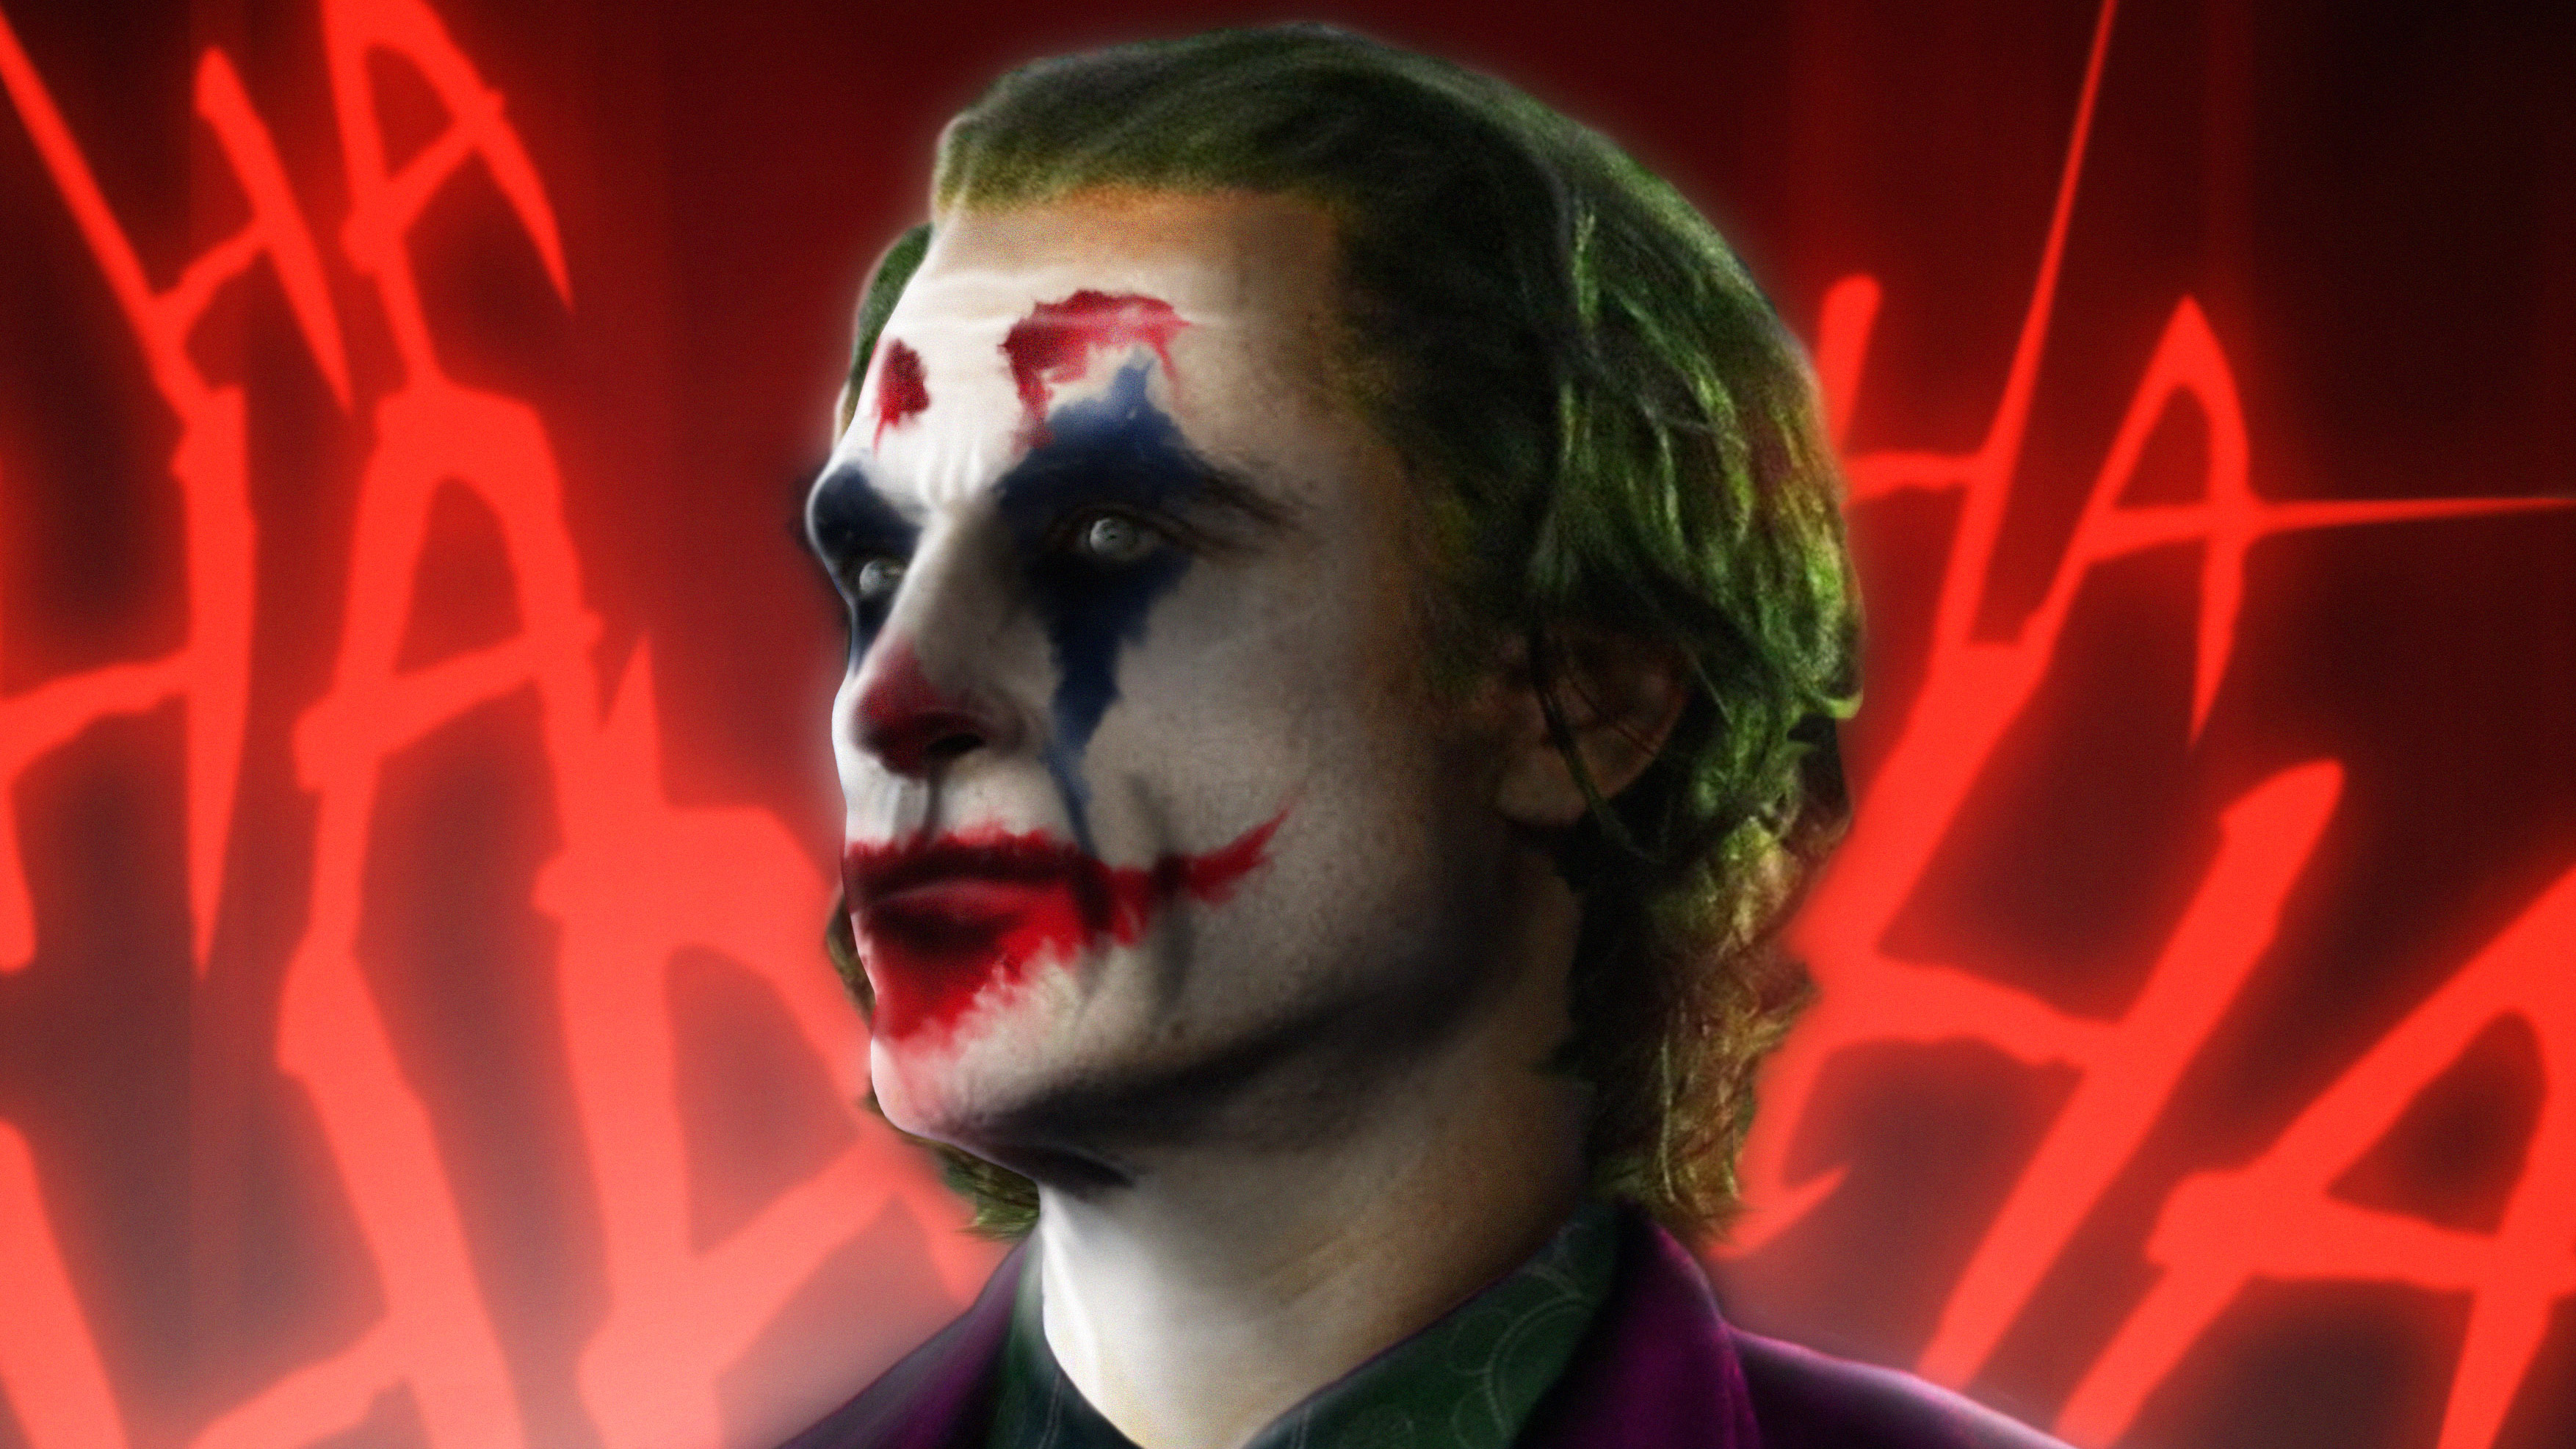 Joker Movie Joaquin Phoenix Hd Movies 4k Wallpapers